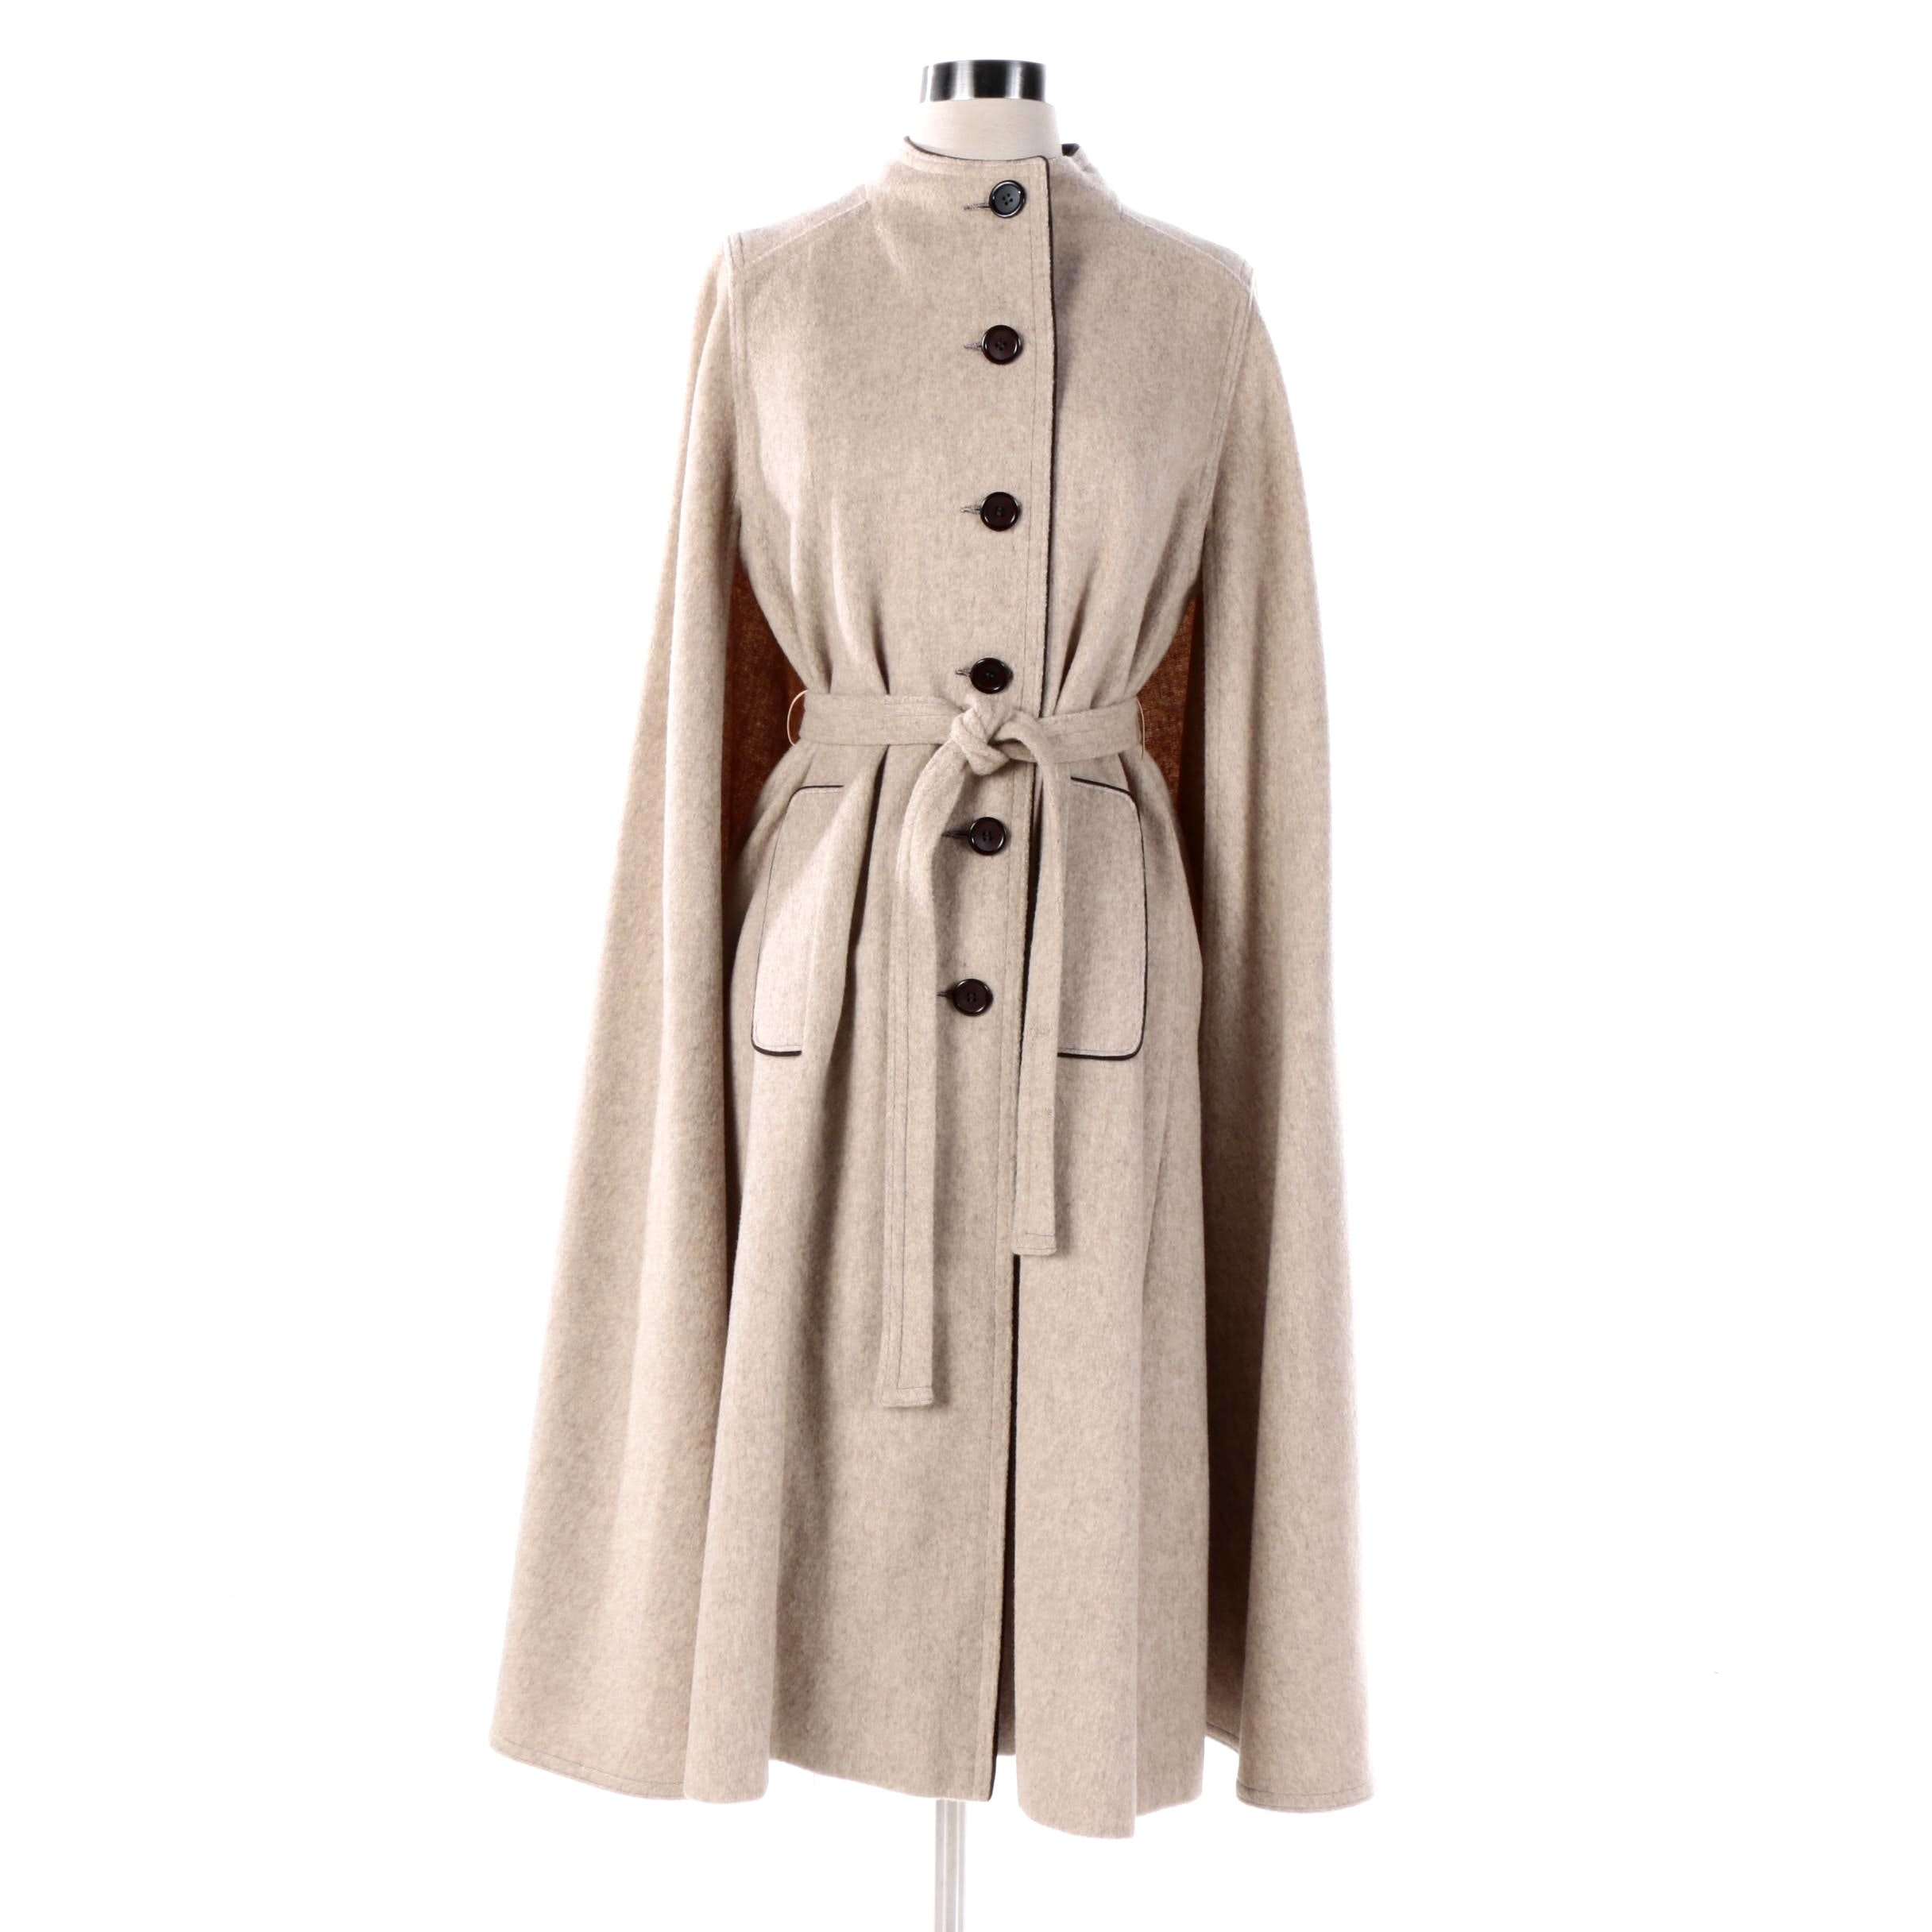 Women's Vintage Gemini Beige Wool Cape Coat